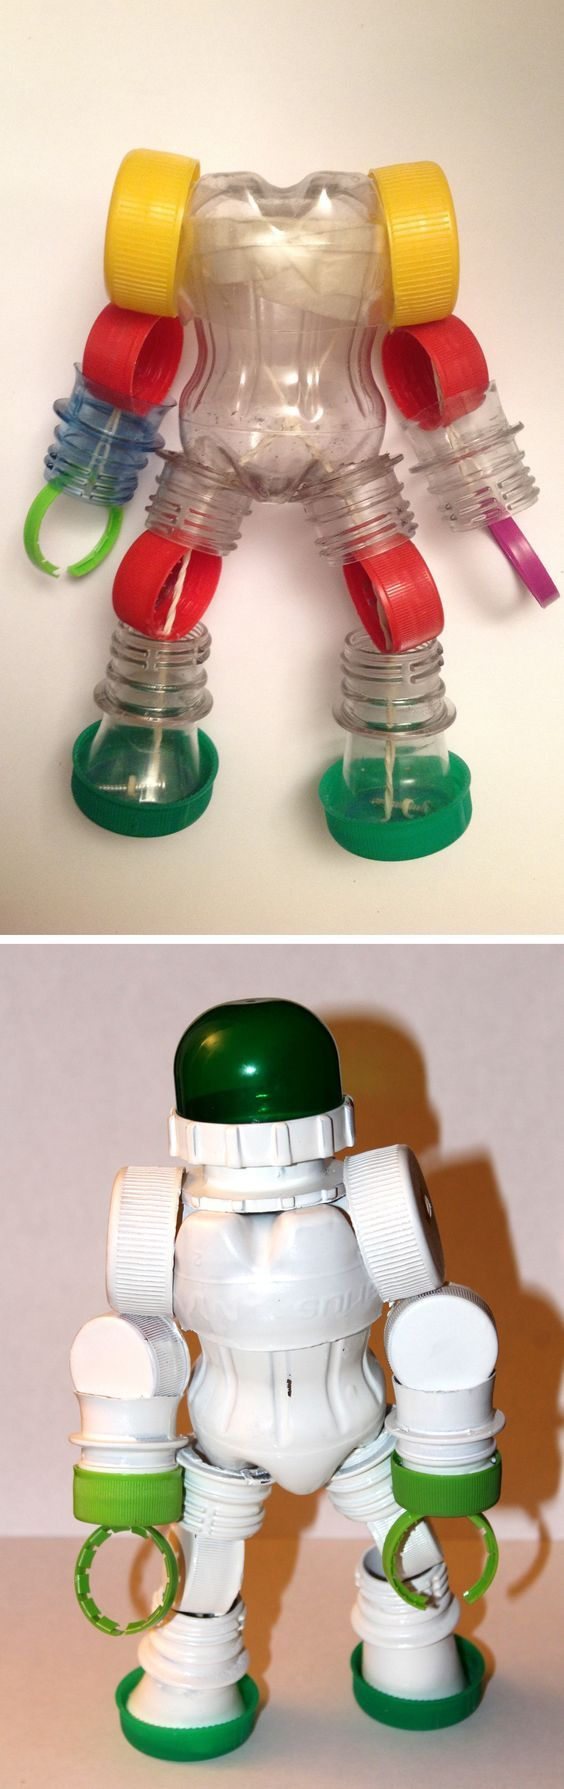 bottle toy:riciclo